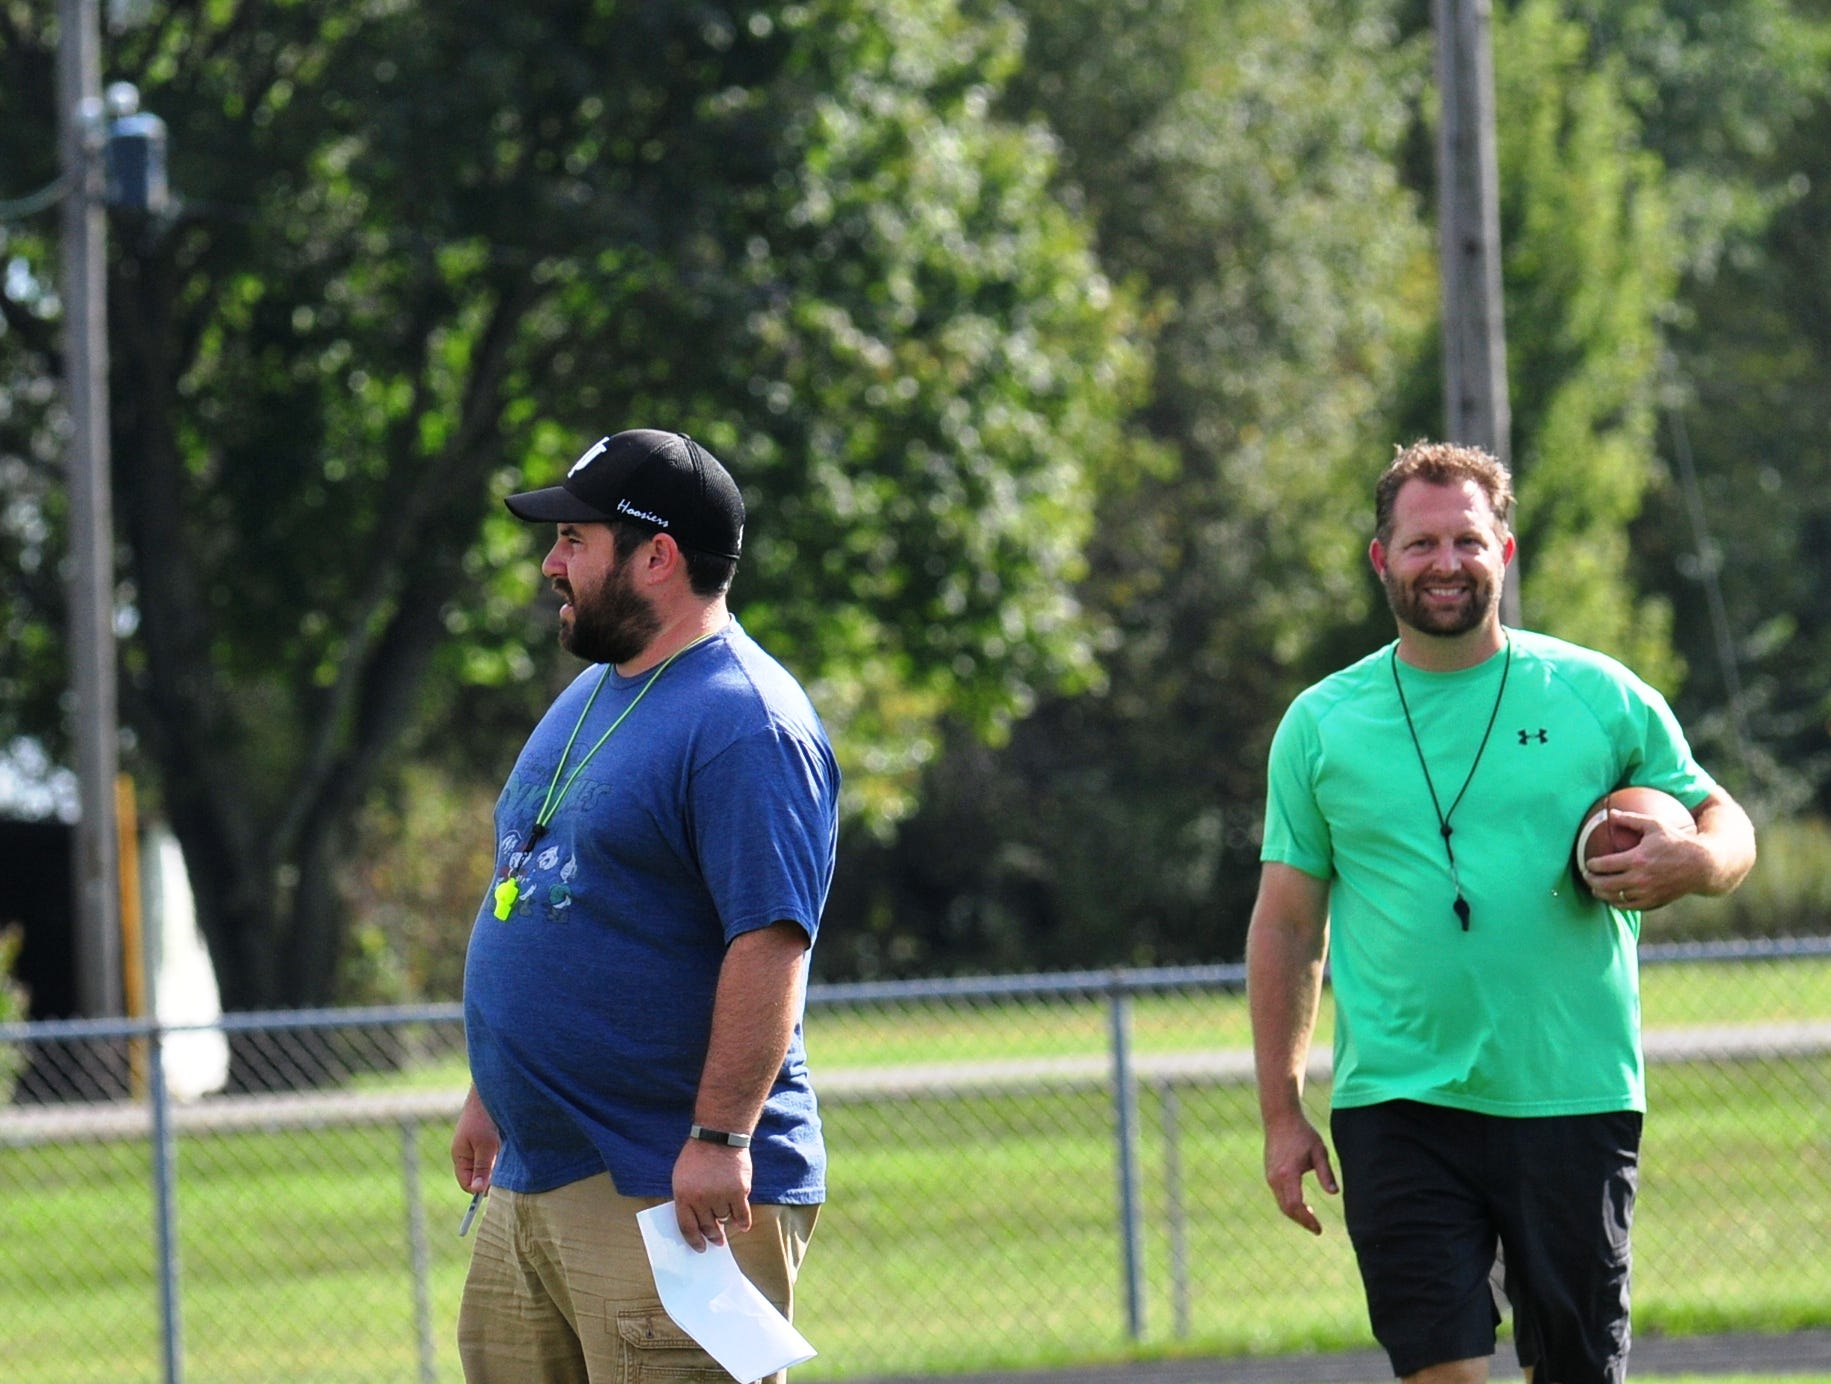 Wes Oler, left, and Ryan Halloran were named Northeastern High School's football co-coaches after longtime head coach Mike Roeder resigned on Oct. 3, 2018.